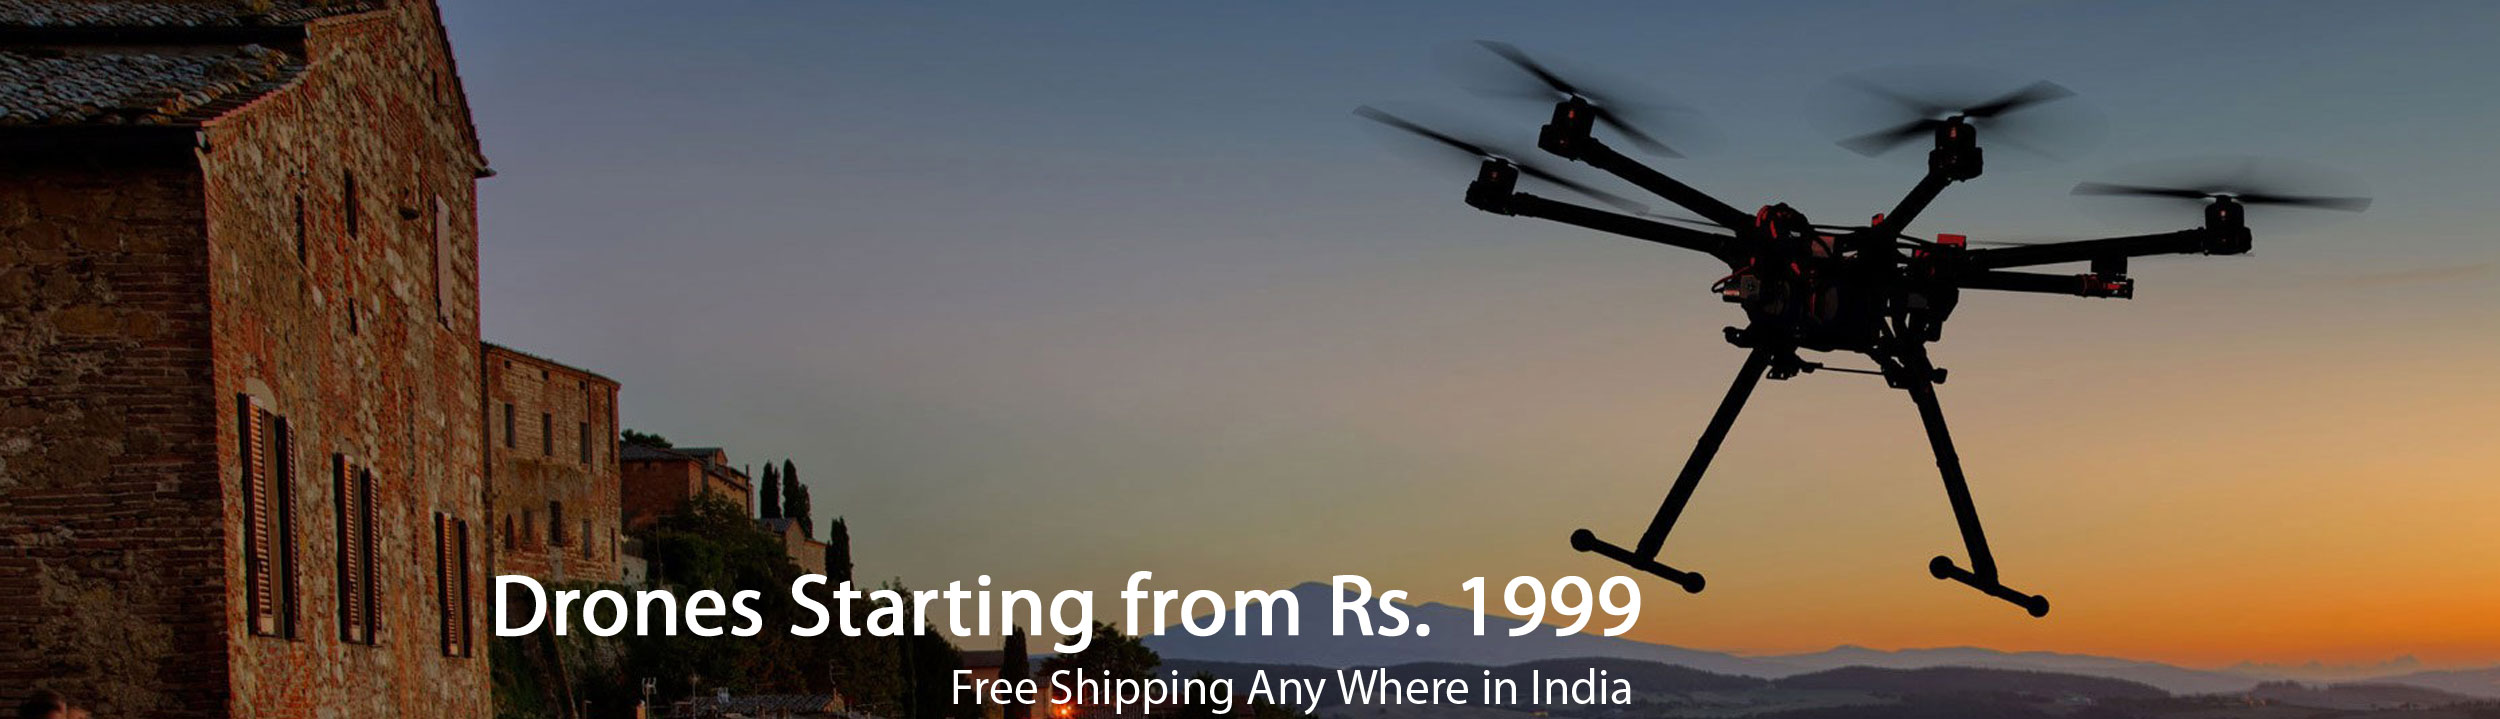 Drones Starting from Rs. 1999, Free Shipping Any Where in India